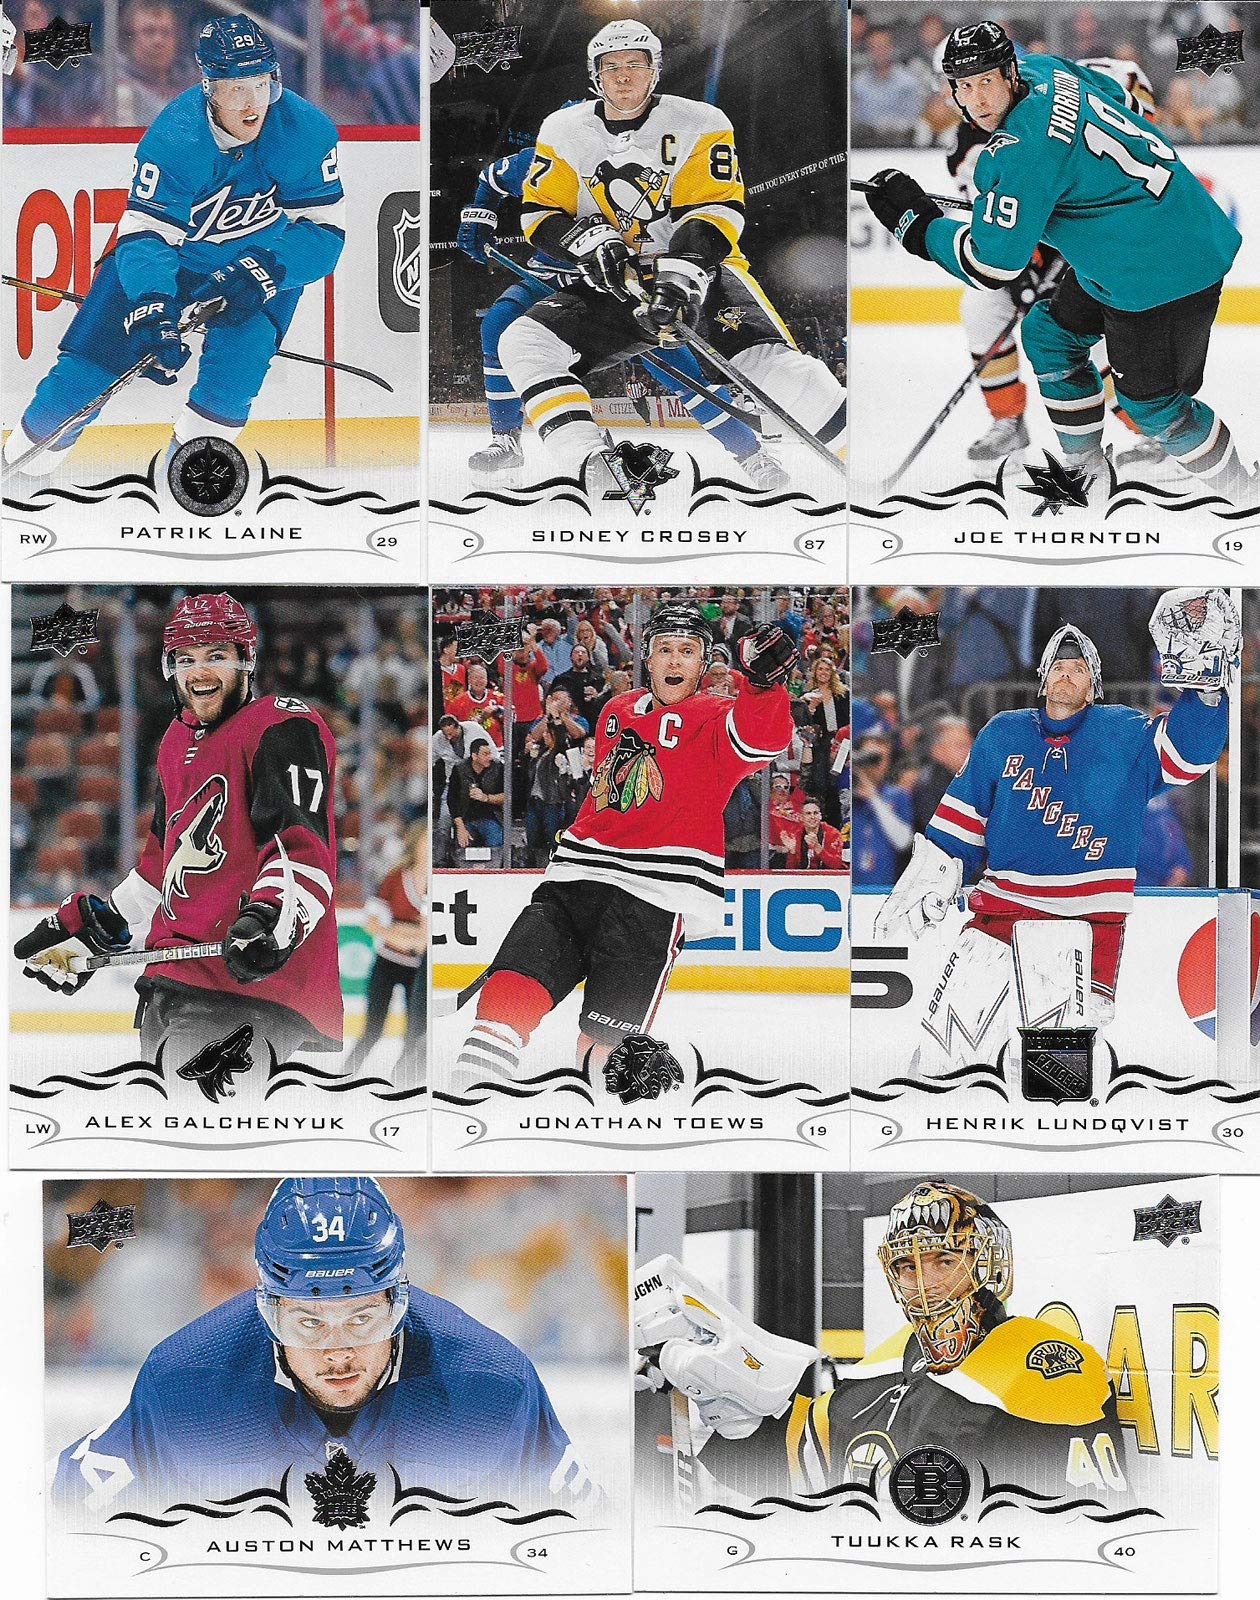 2018 2019 Upper Deck NHL Hockey Series Two Complete Mint Basic Hand Collated 200 Card Veteran Players Set Including Sidney Crosby and Auston Matthews Plus Many Others